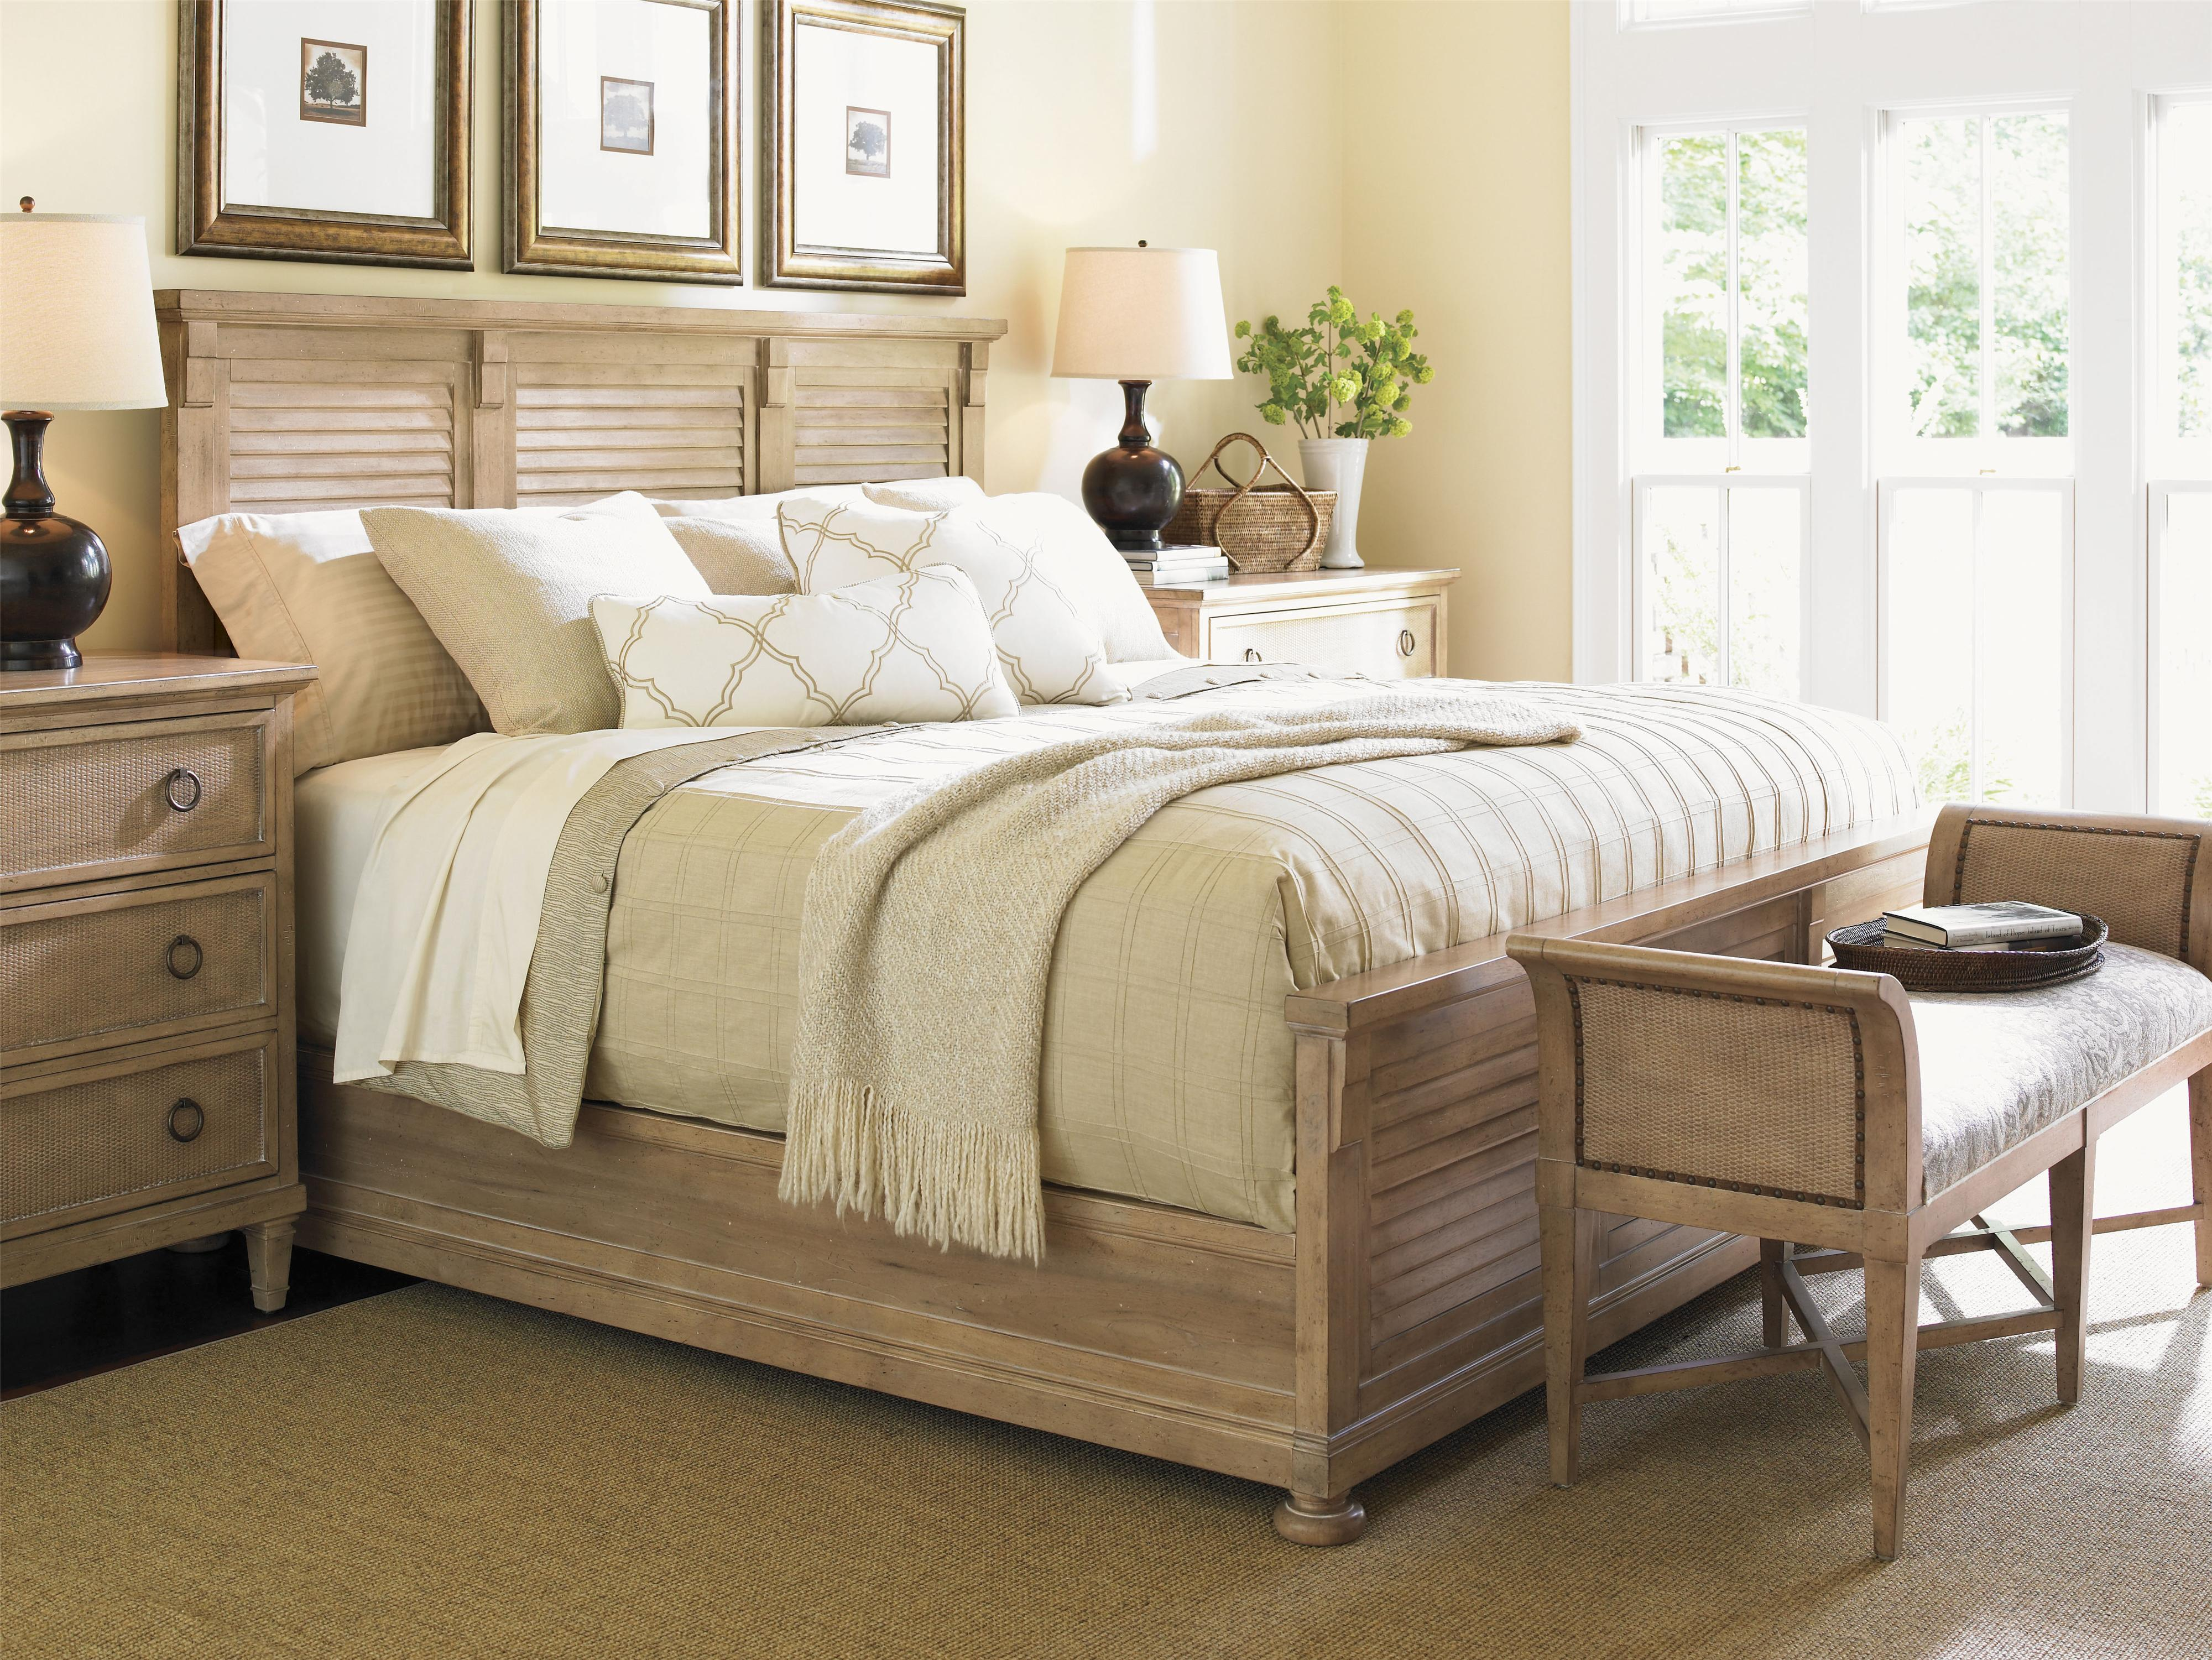 monterey sands by lexington beach style bedroom furniture